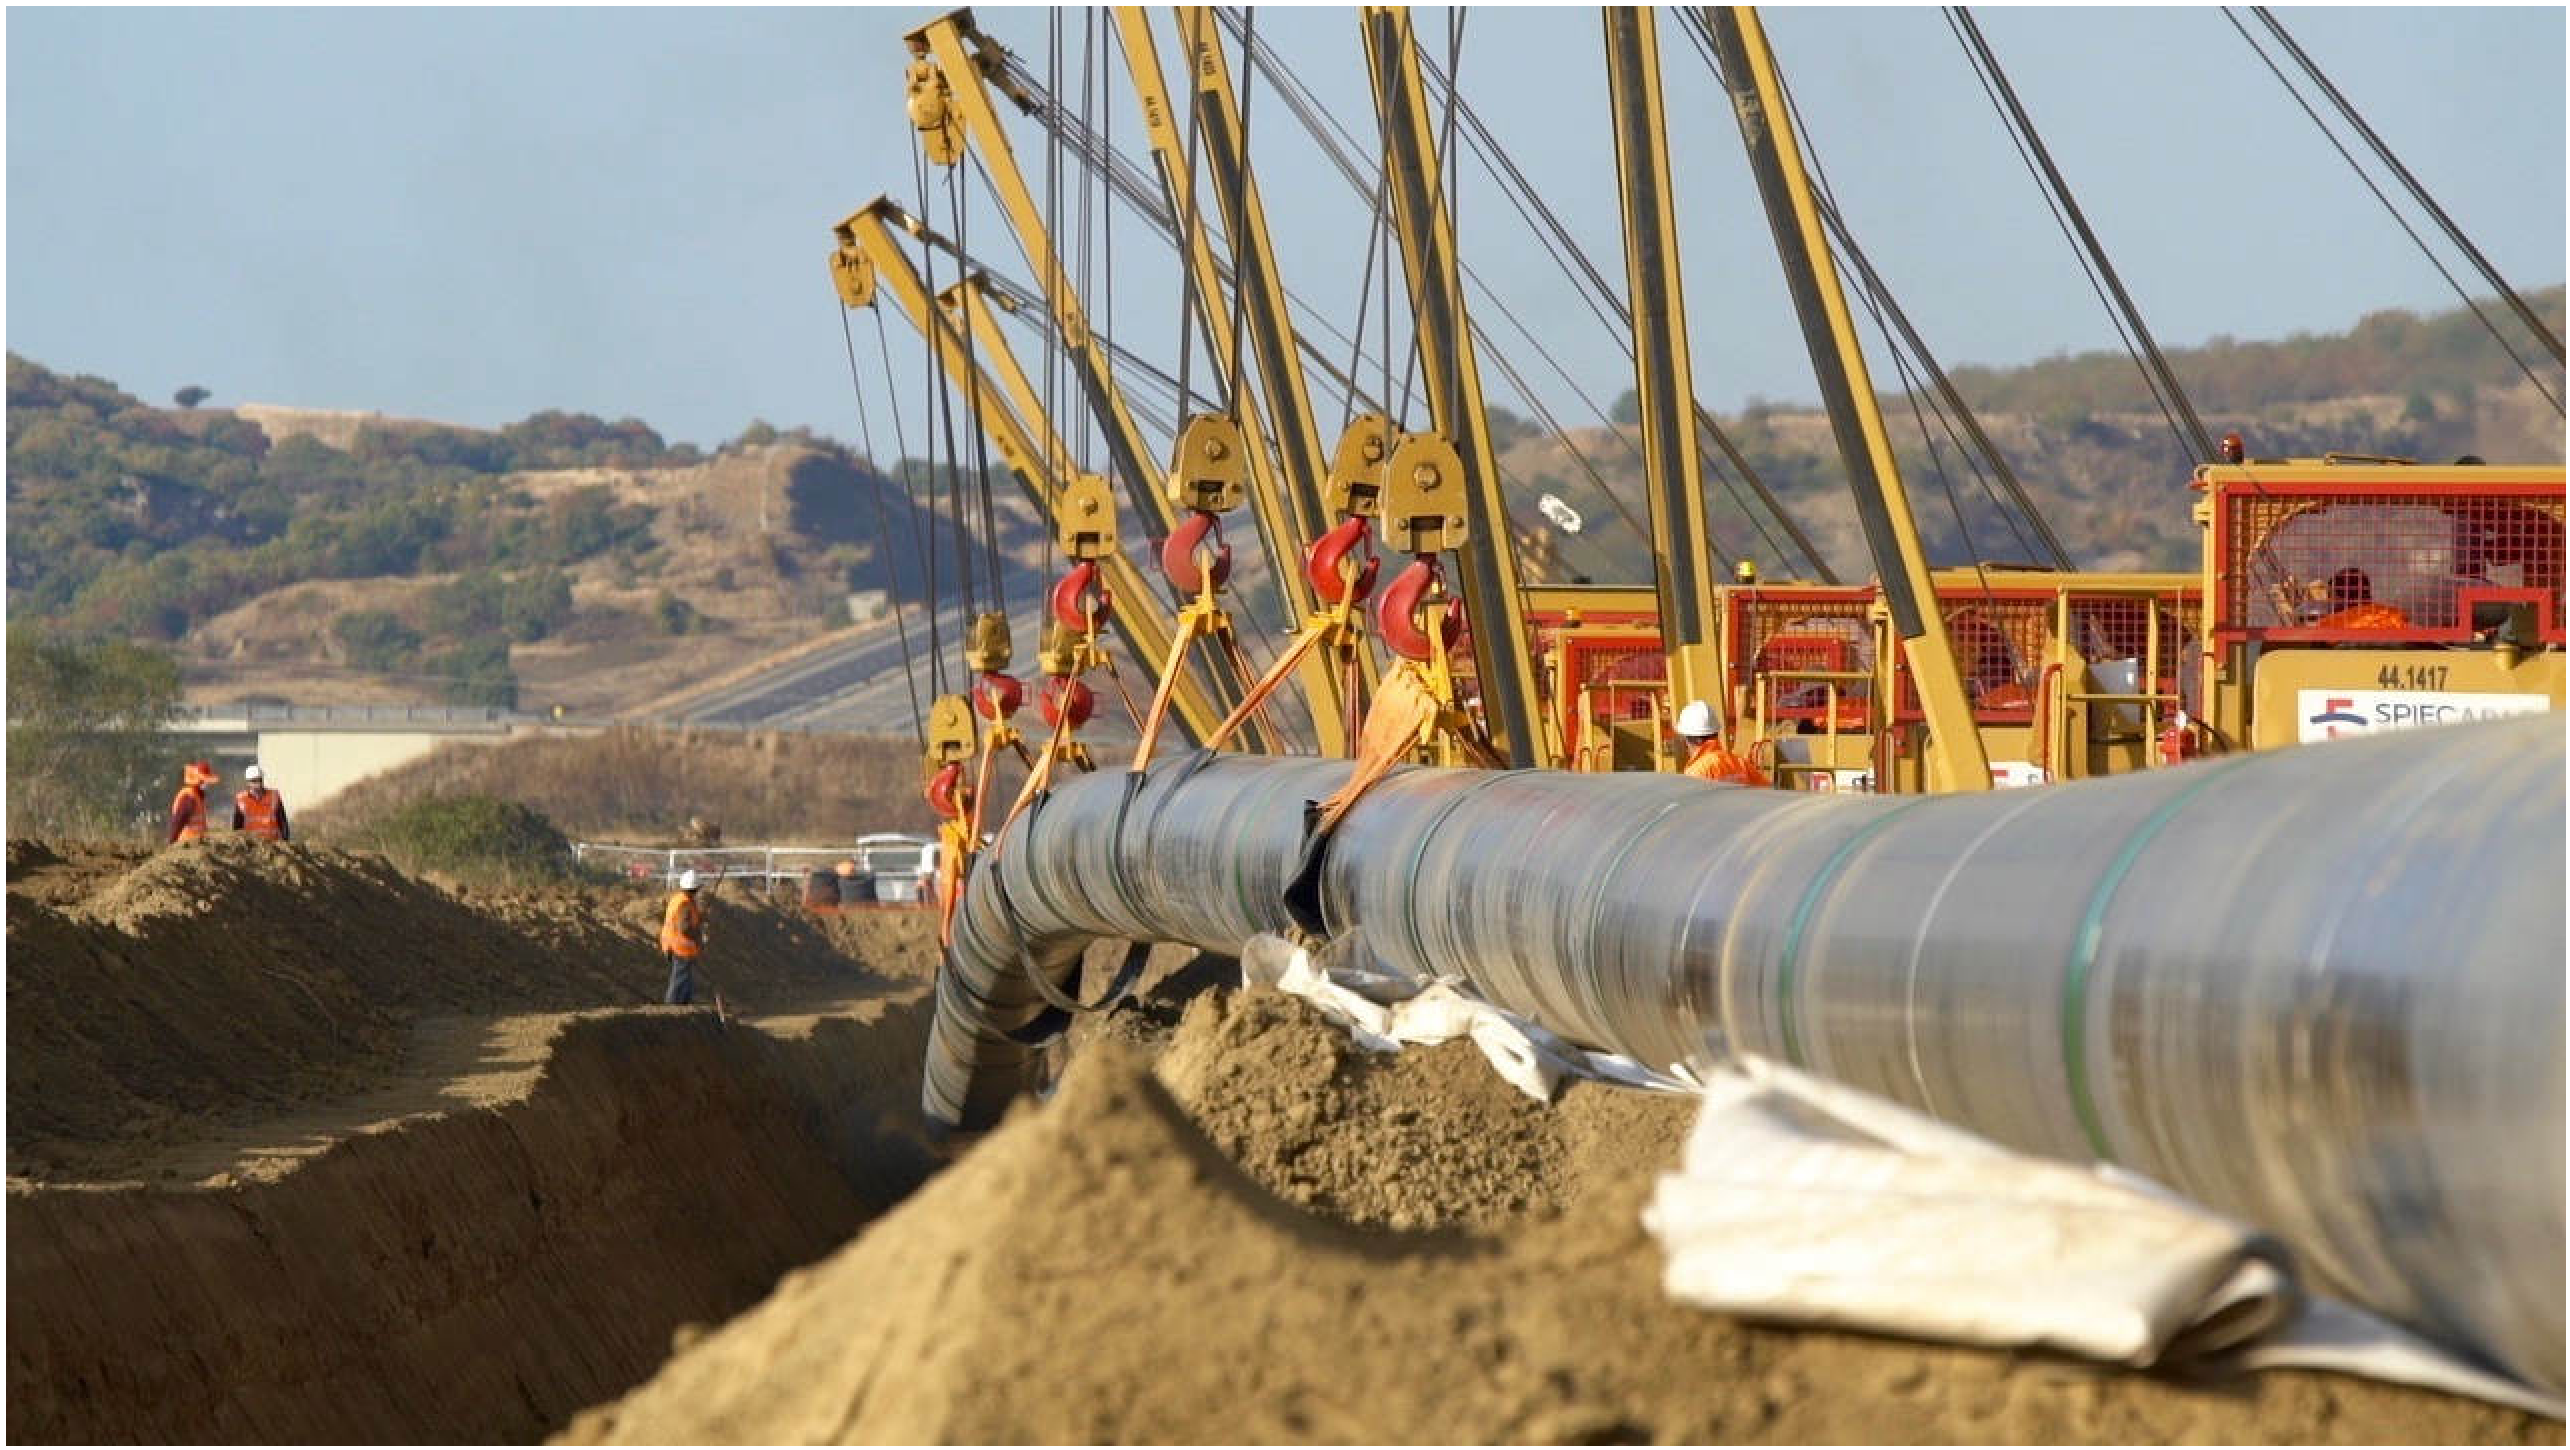 Welded steel pipes are lowered into trenches in northern Greece during November construction efforts. (Photo courtesy of Trans Adriatic Pipeline)